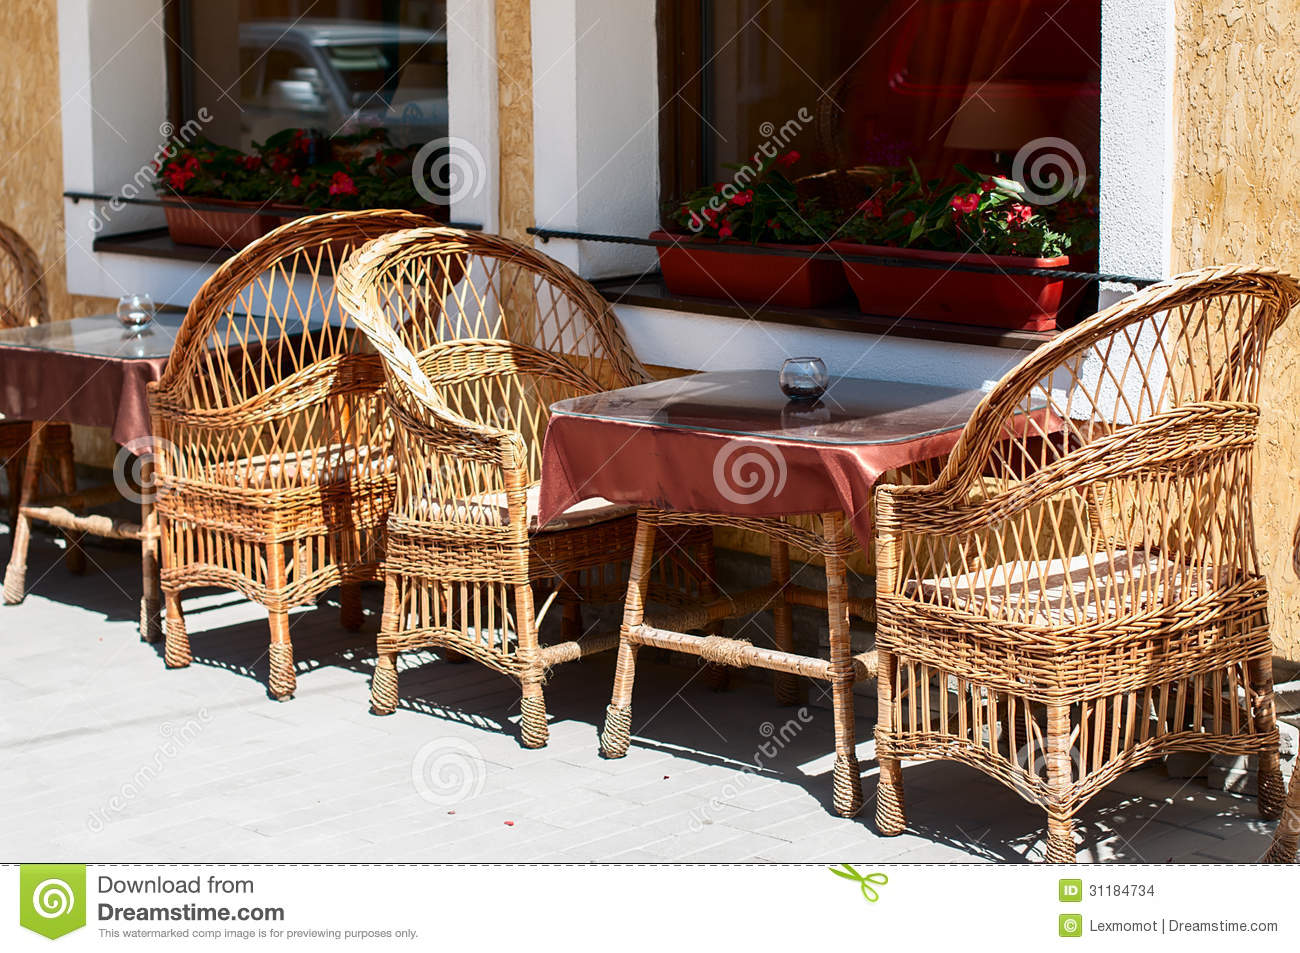 Wicker furniture in cafe outdoors.